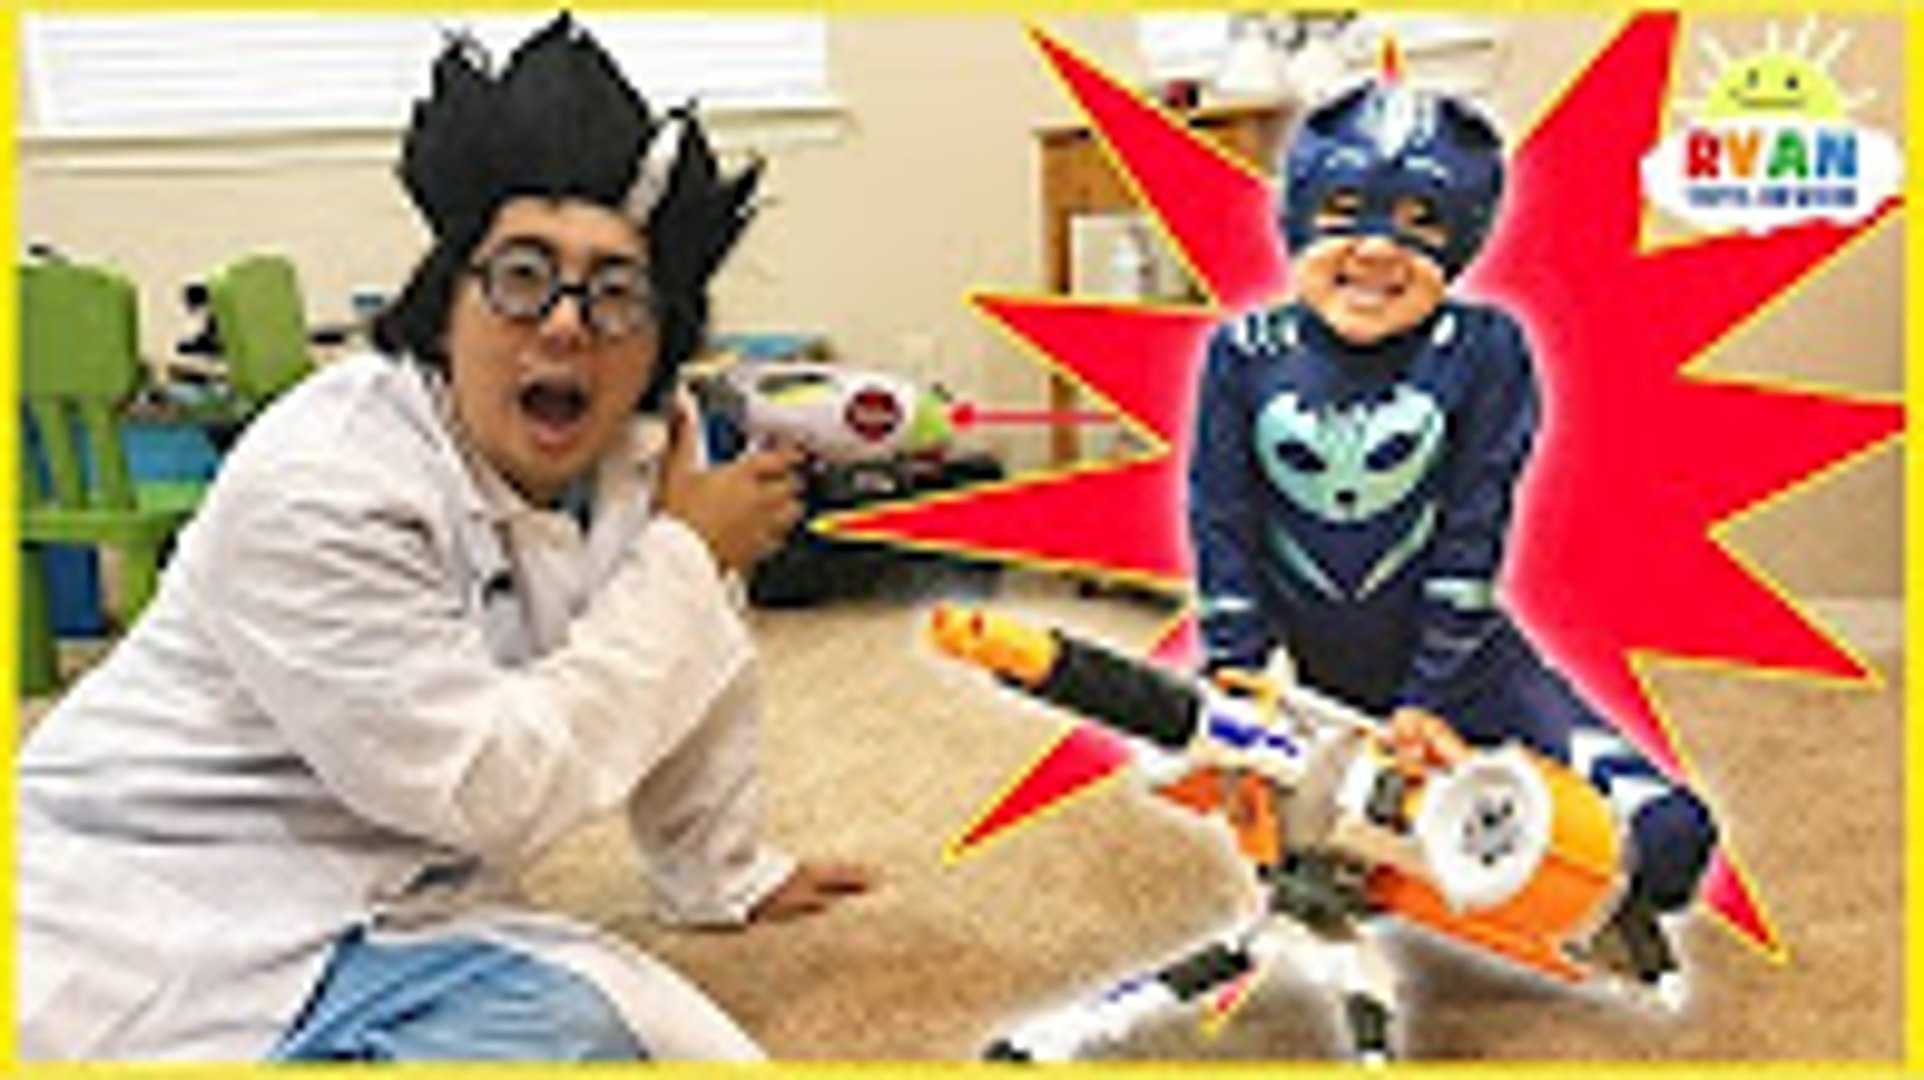 PJ MASKS IRL SUPERHEROES Catboy and Spiderman Surprise Eggs stolen by Romeo and